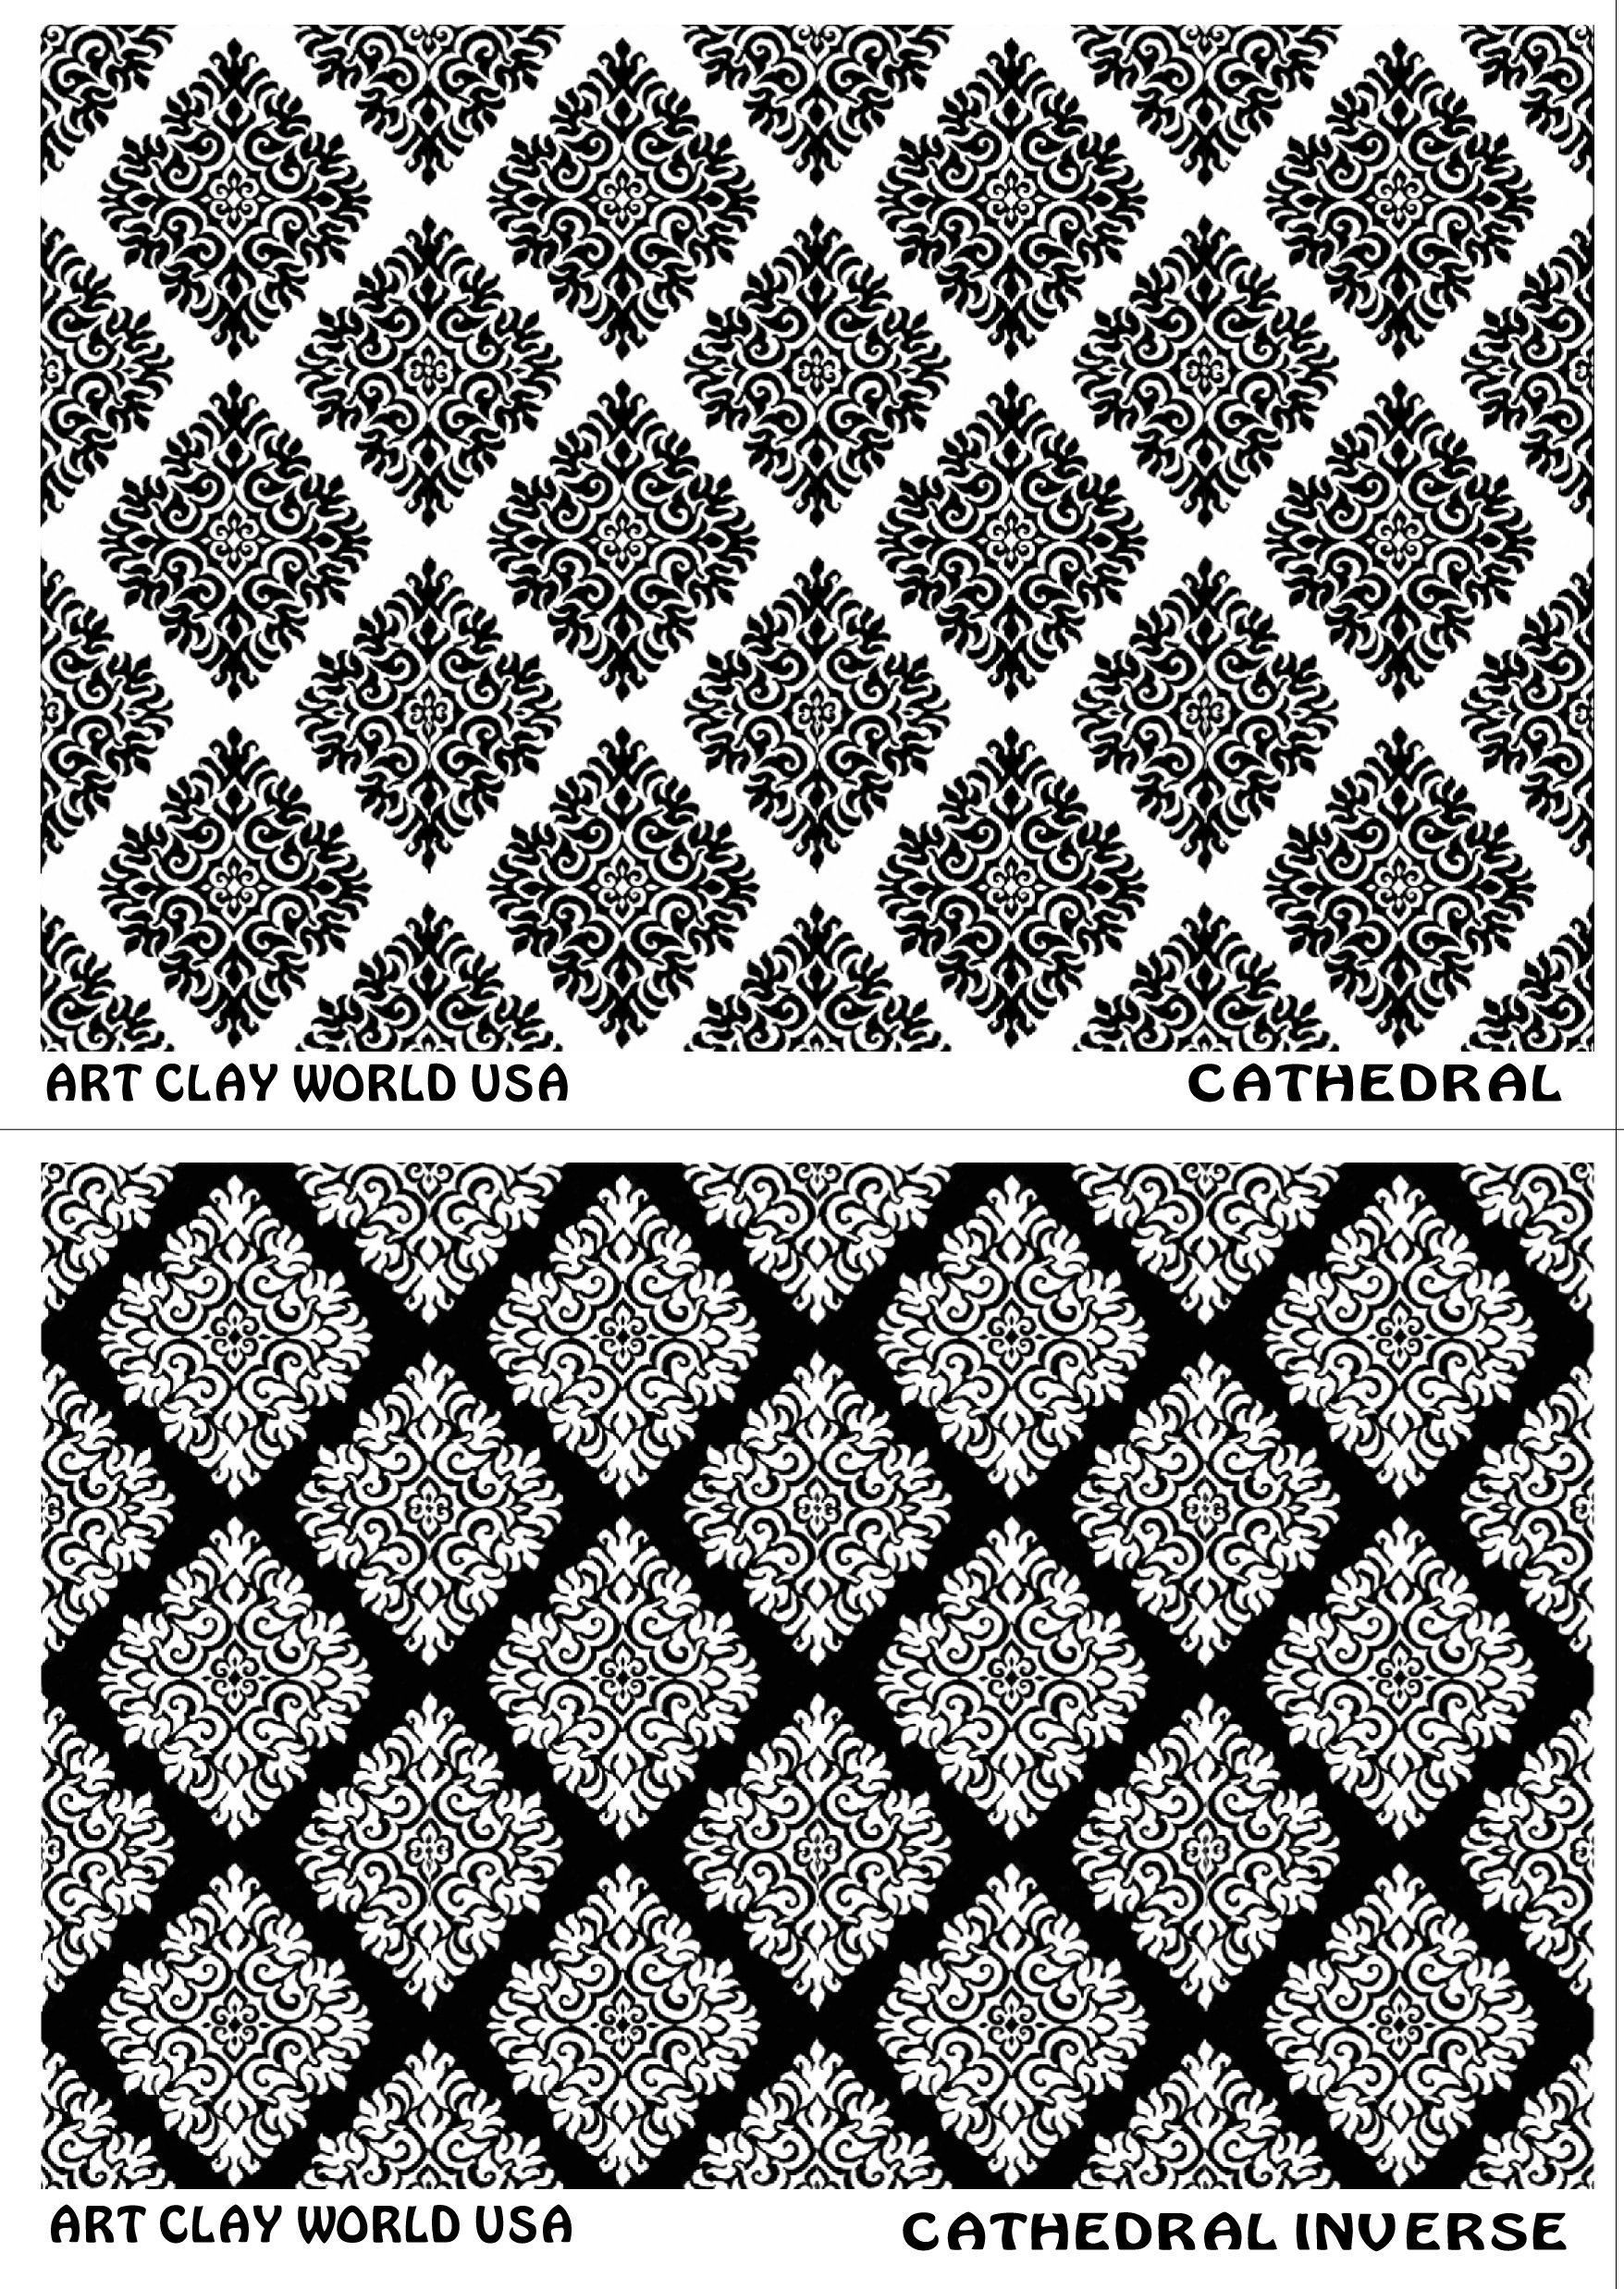 FlexiStamps Texture Sheet Set Cathedral Designs (Including Cathedral and Cathedral Inverse)- 2 pc.